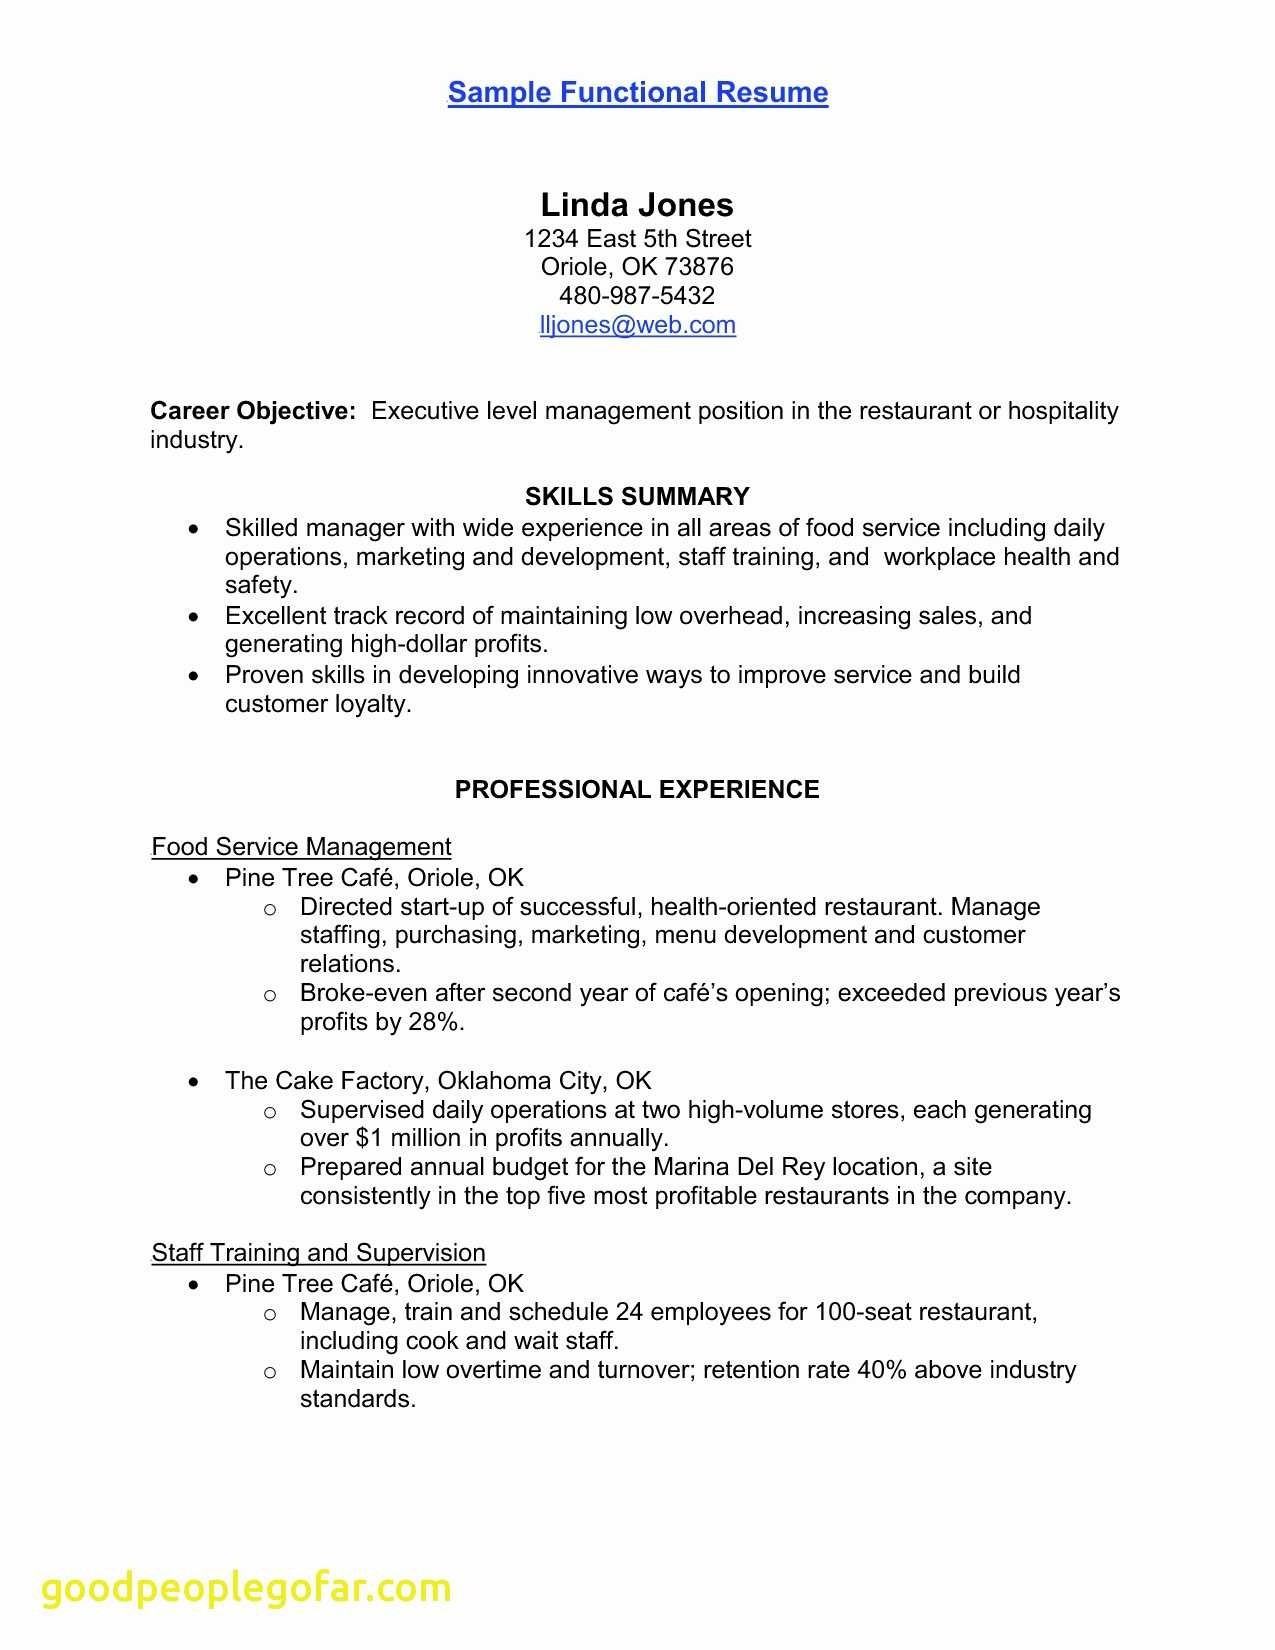 Electrician Resume Template - Journeyman Electrician Resume Best Electrical Resume Elegant